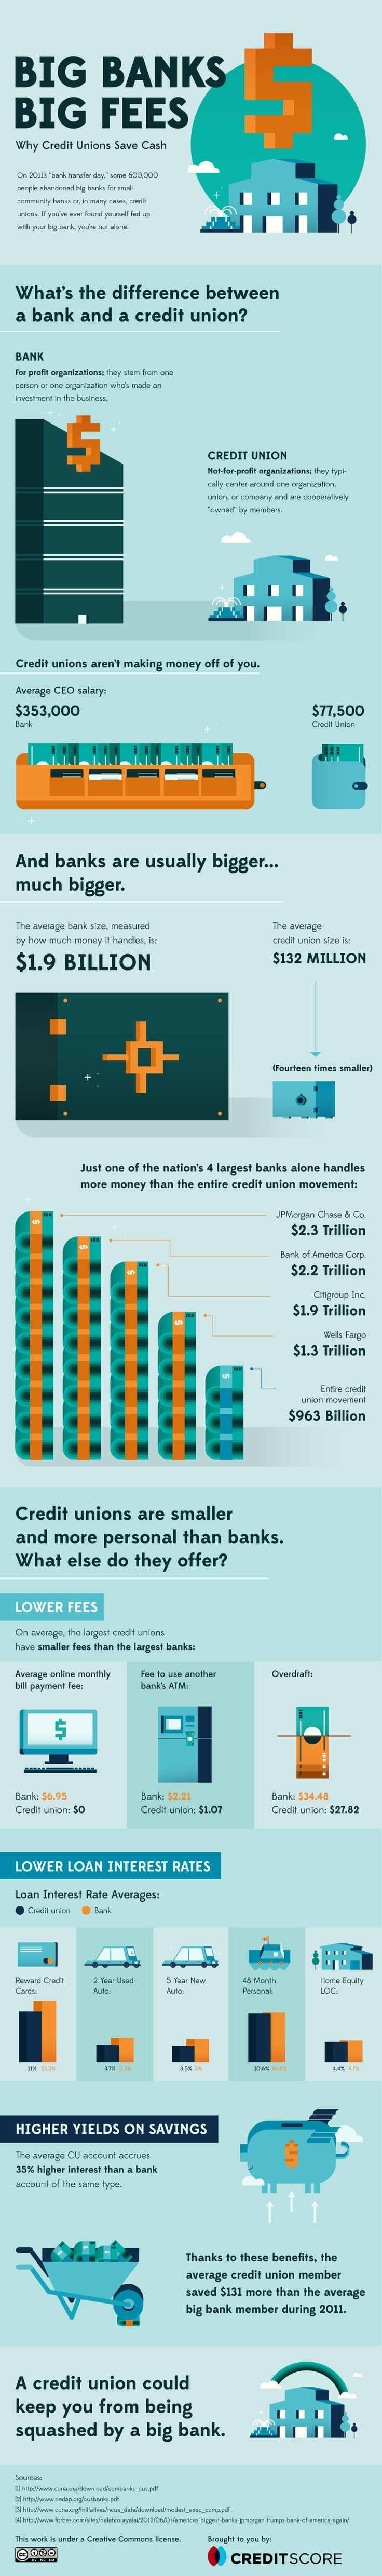 Knoxville tva credit union hours - Credit Score Infographic Under A Creative Commons License Big Banks Big Fees